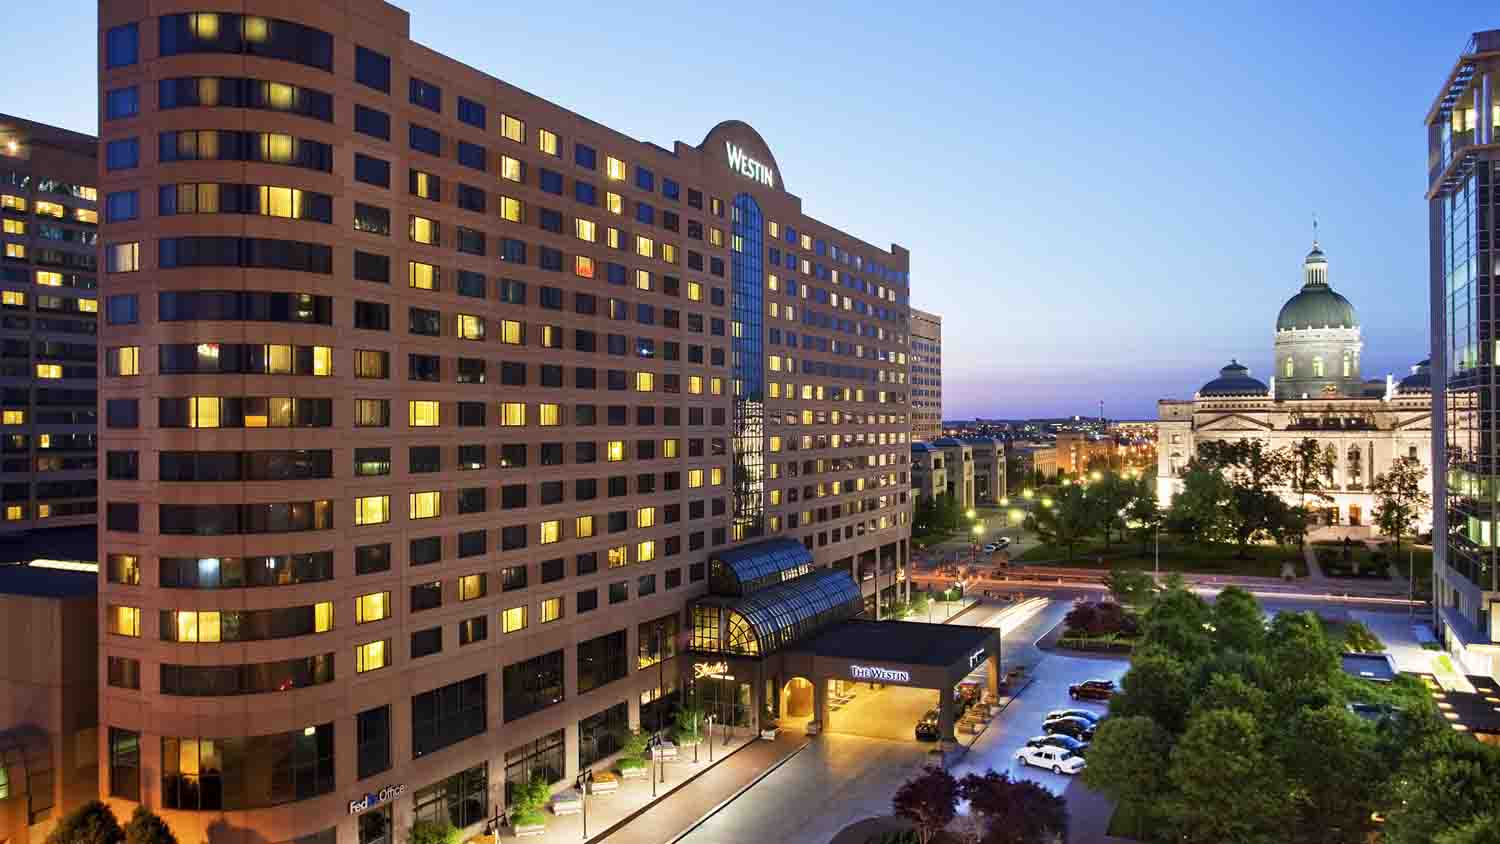 The Westin Indianapolis 8